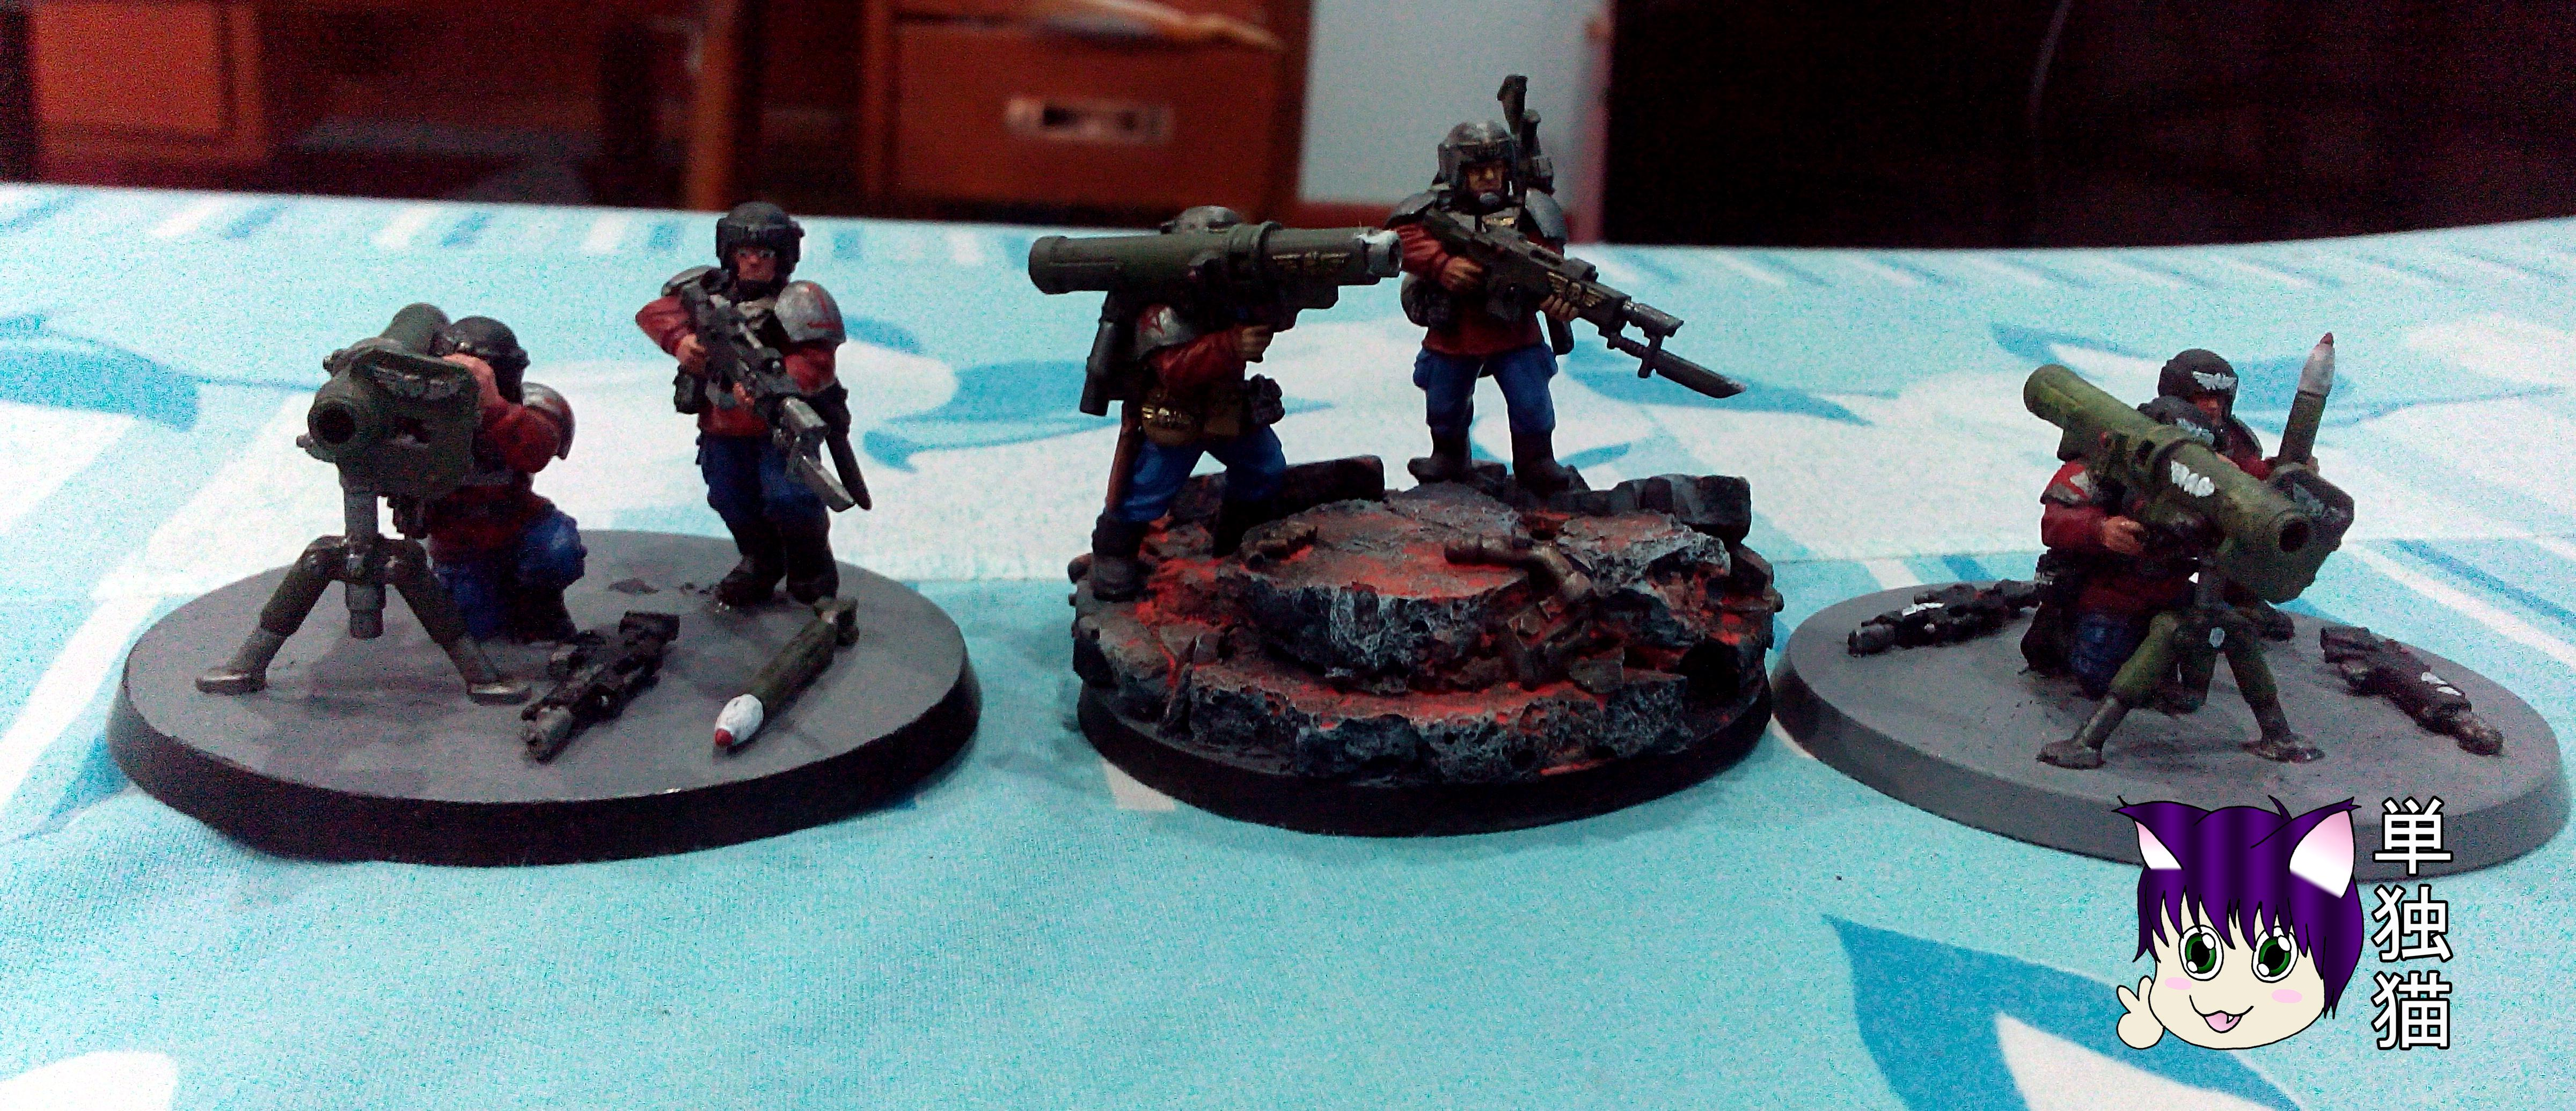 Bazooka, Heavyweapons, Imperial Guard, Missile Launcher